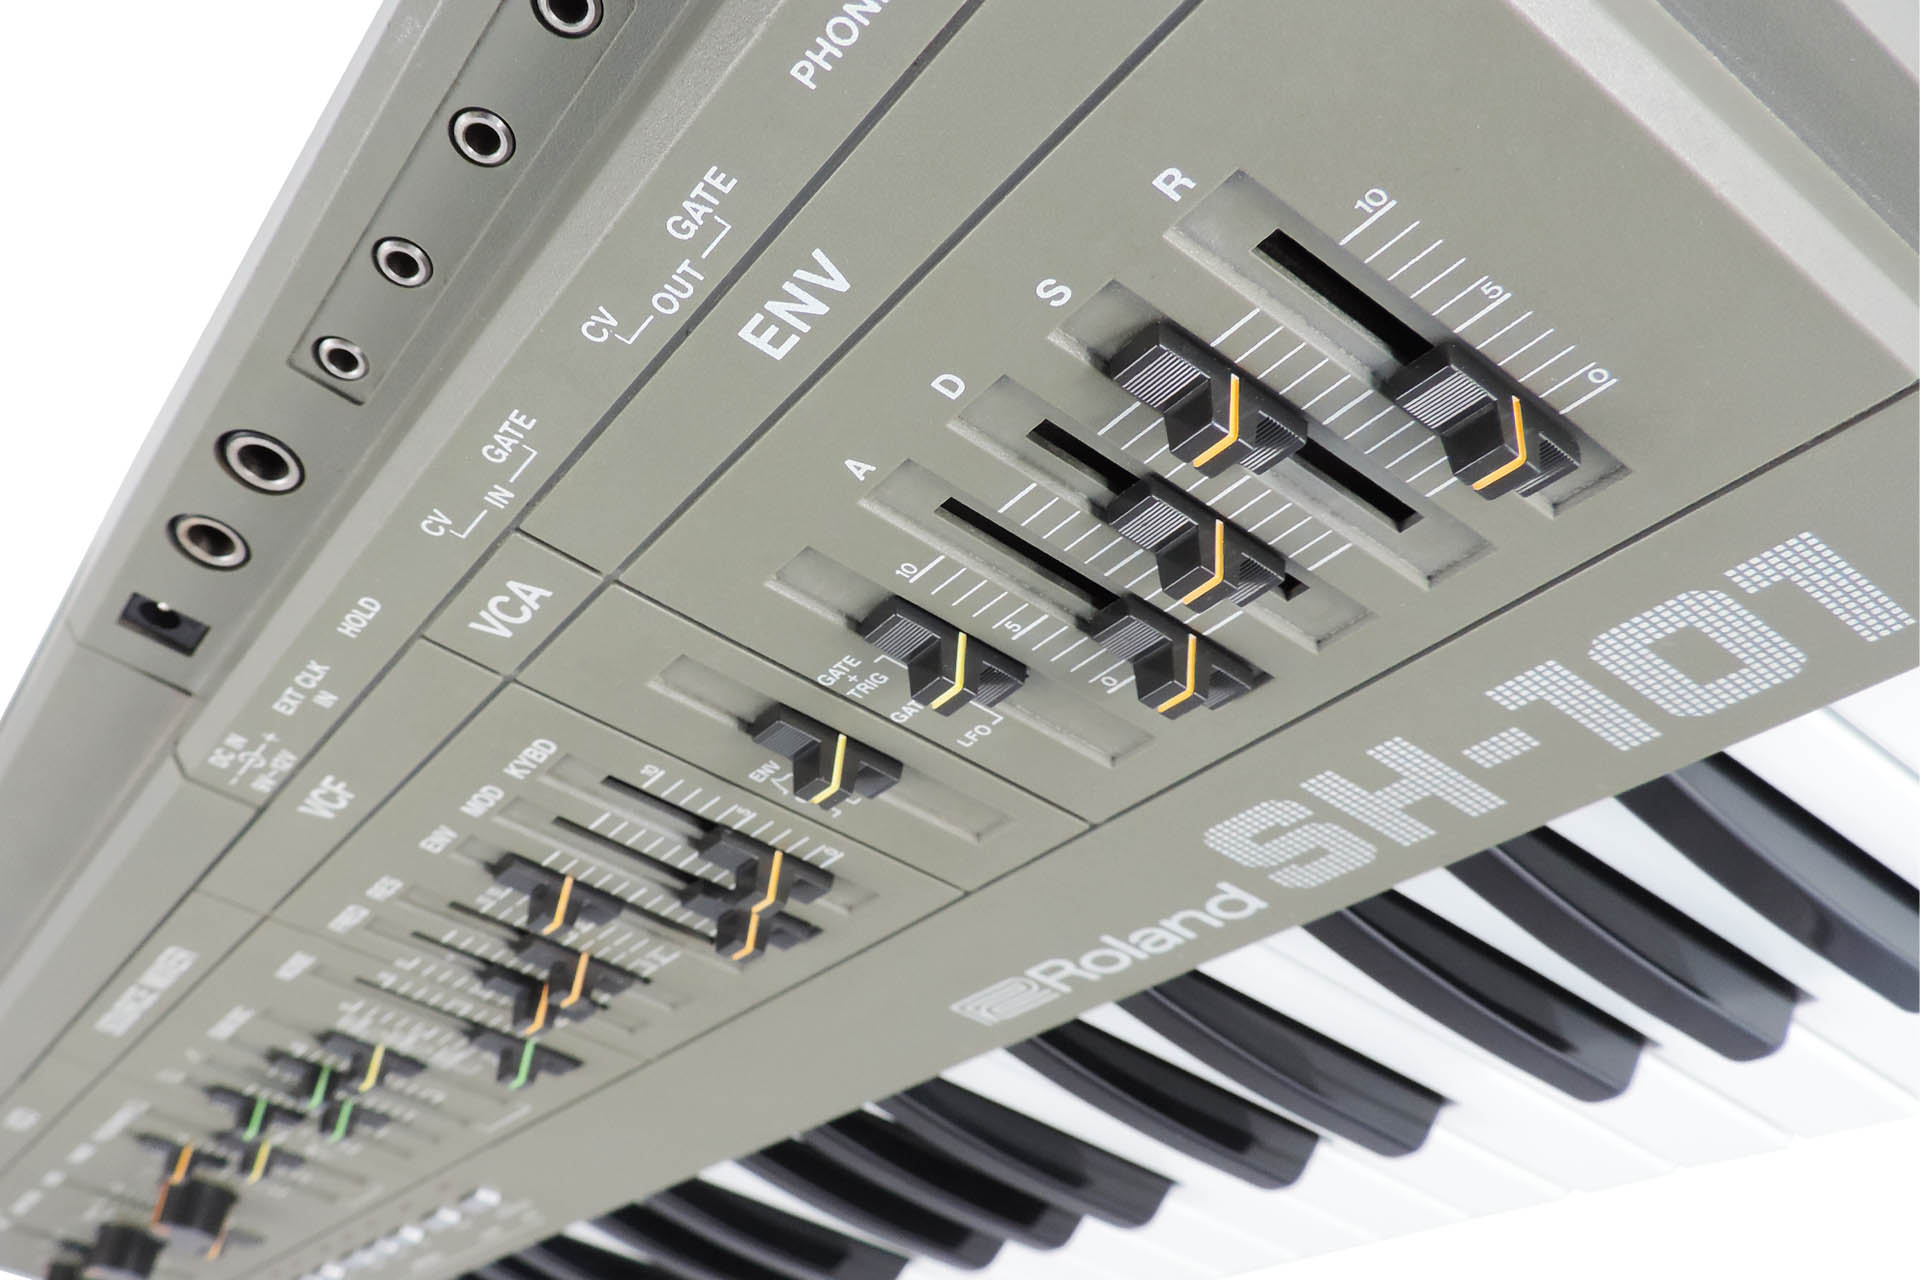 Give your Roland SH-101 a little TLC